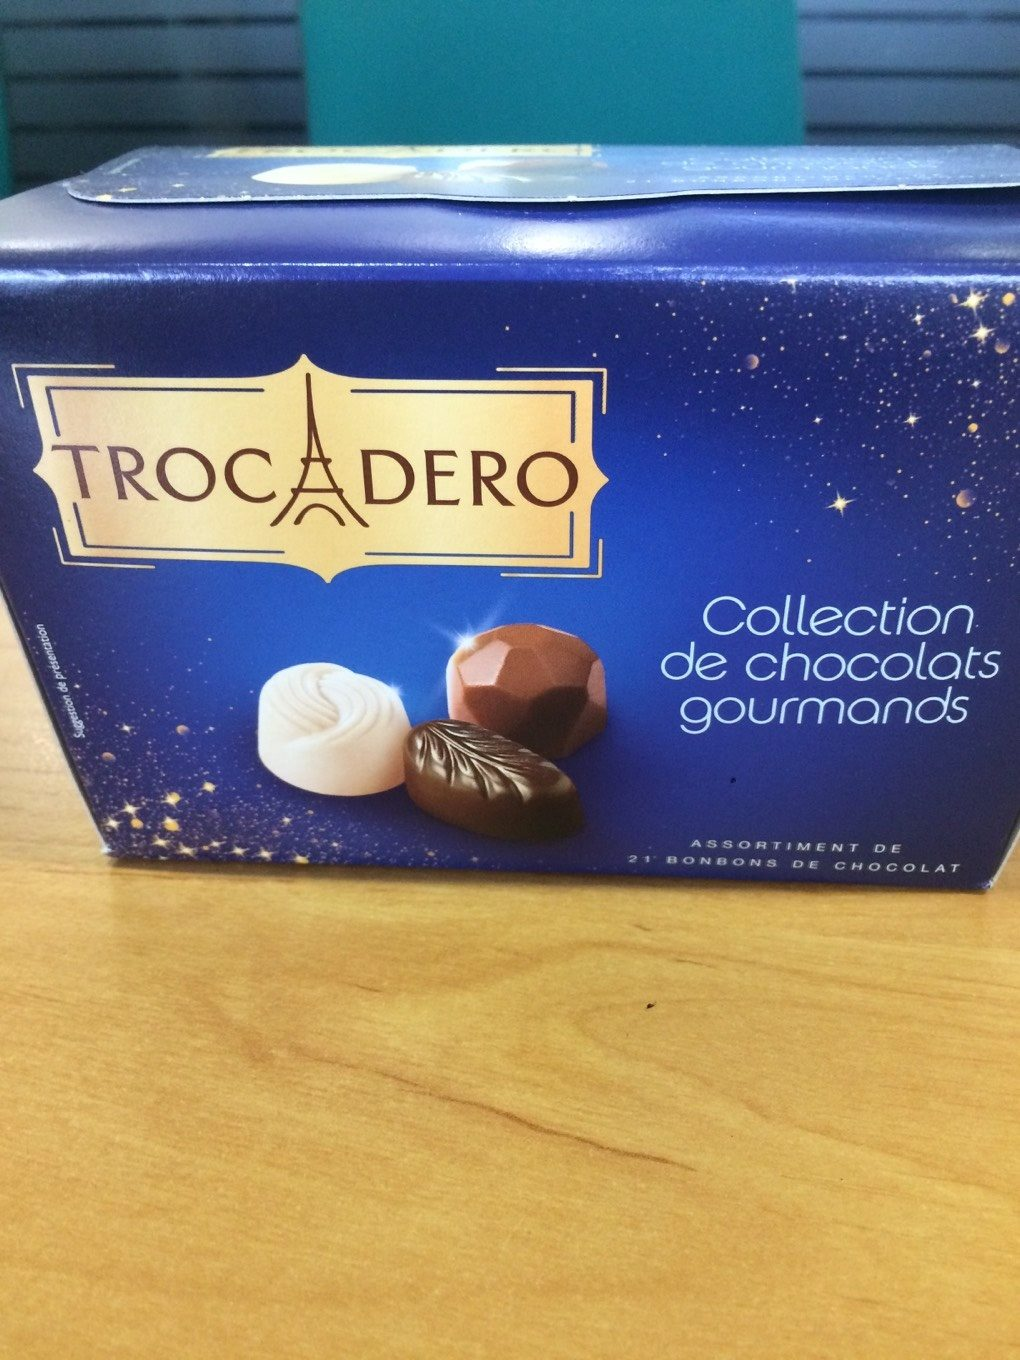 Collection chocolats gourmands - Product